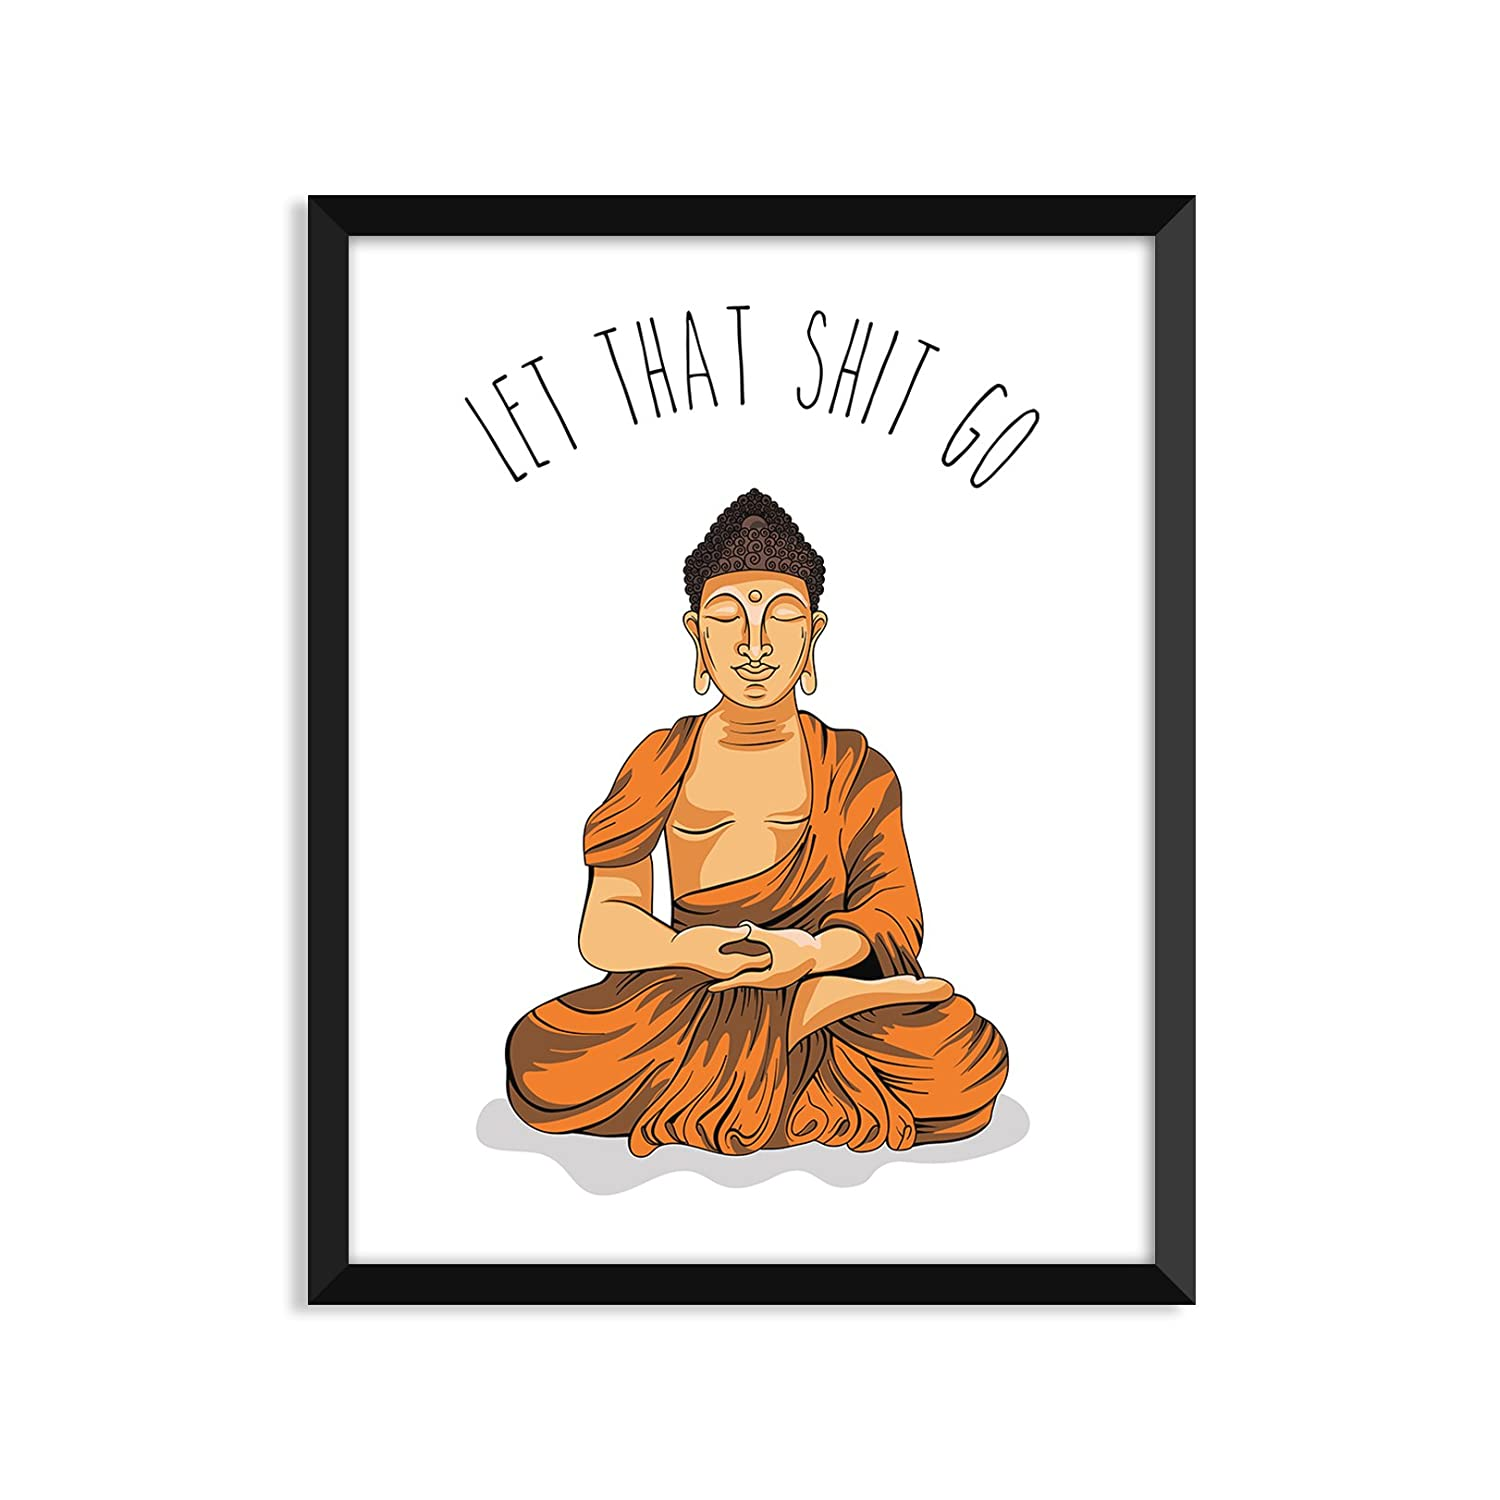 Serif Design Studios Let That Shit Go - Orange Illustration, Yoga Poster, Zen, Buddha, Minimalist Poster, Home Decor, College Dorm Room Decorations, ...